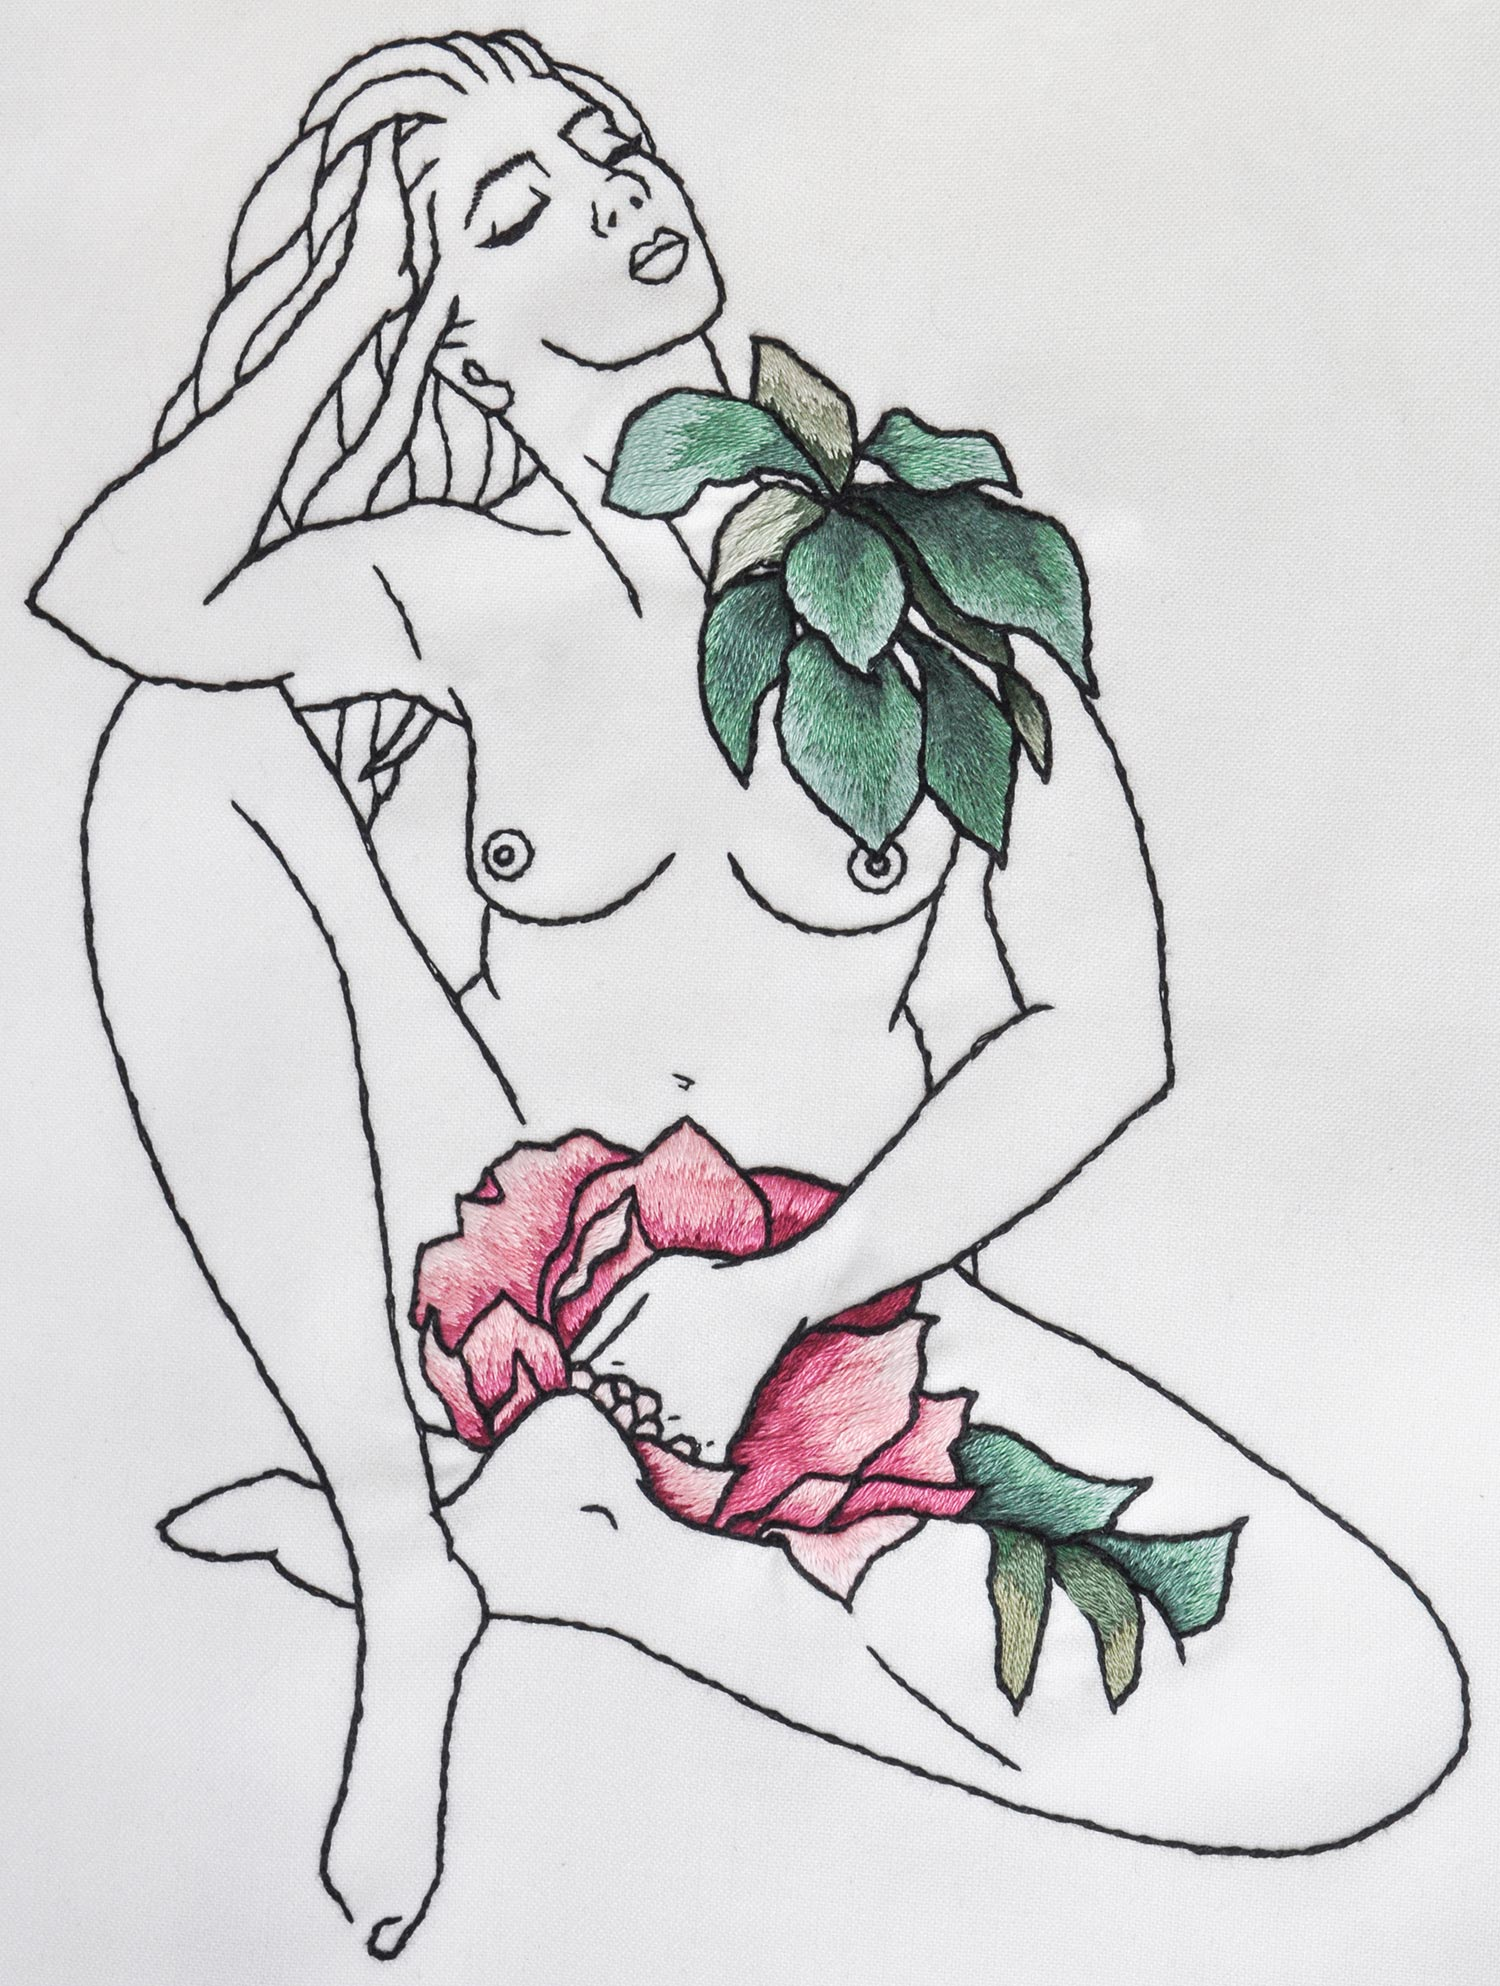 arianehaas_illustration_embroidery_55.jpg